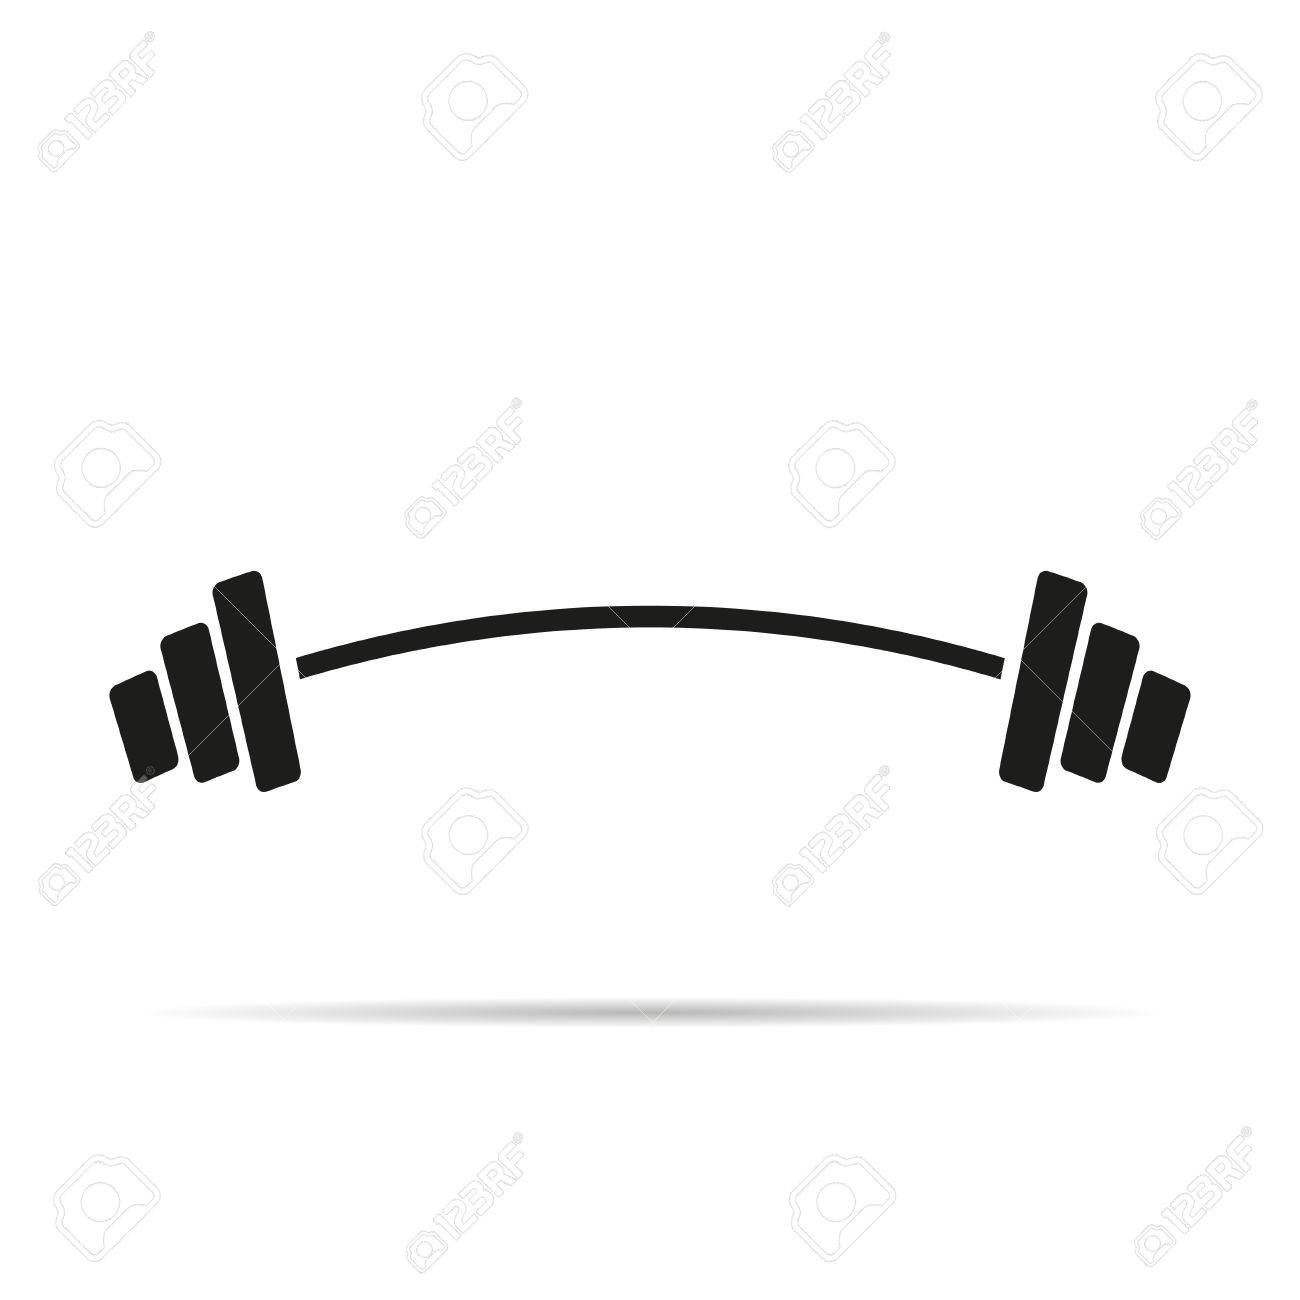 barbell icon flat design